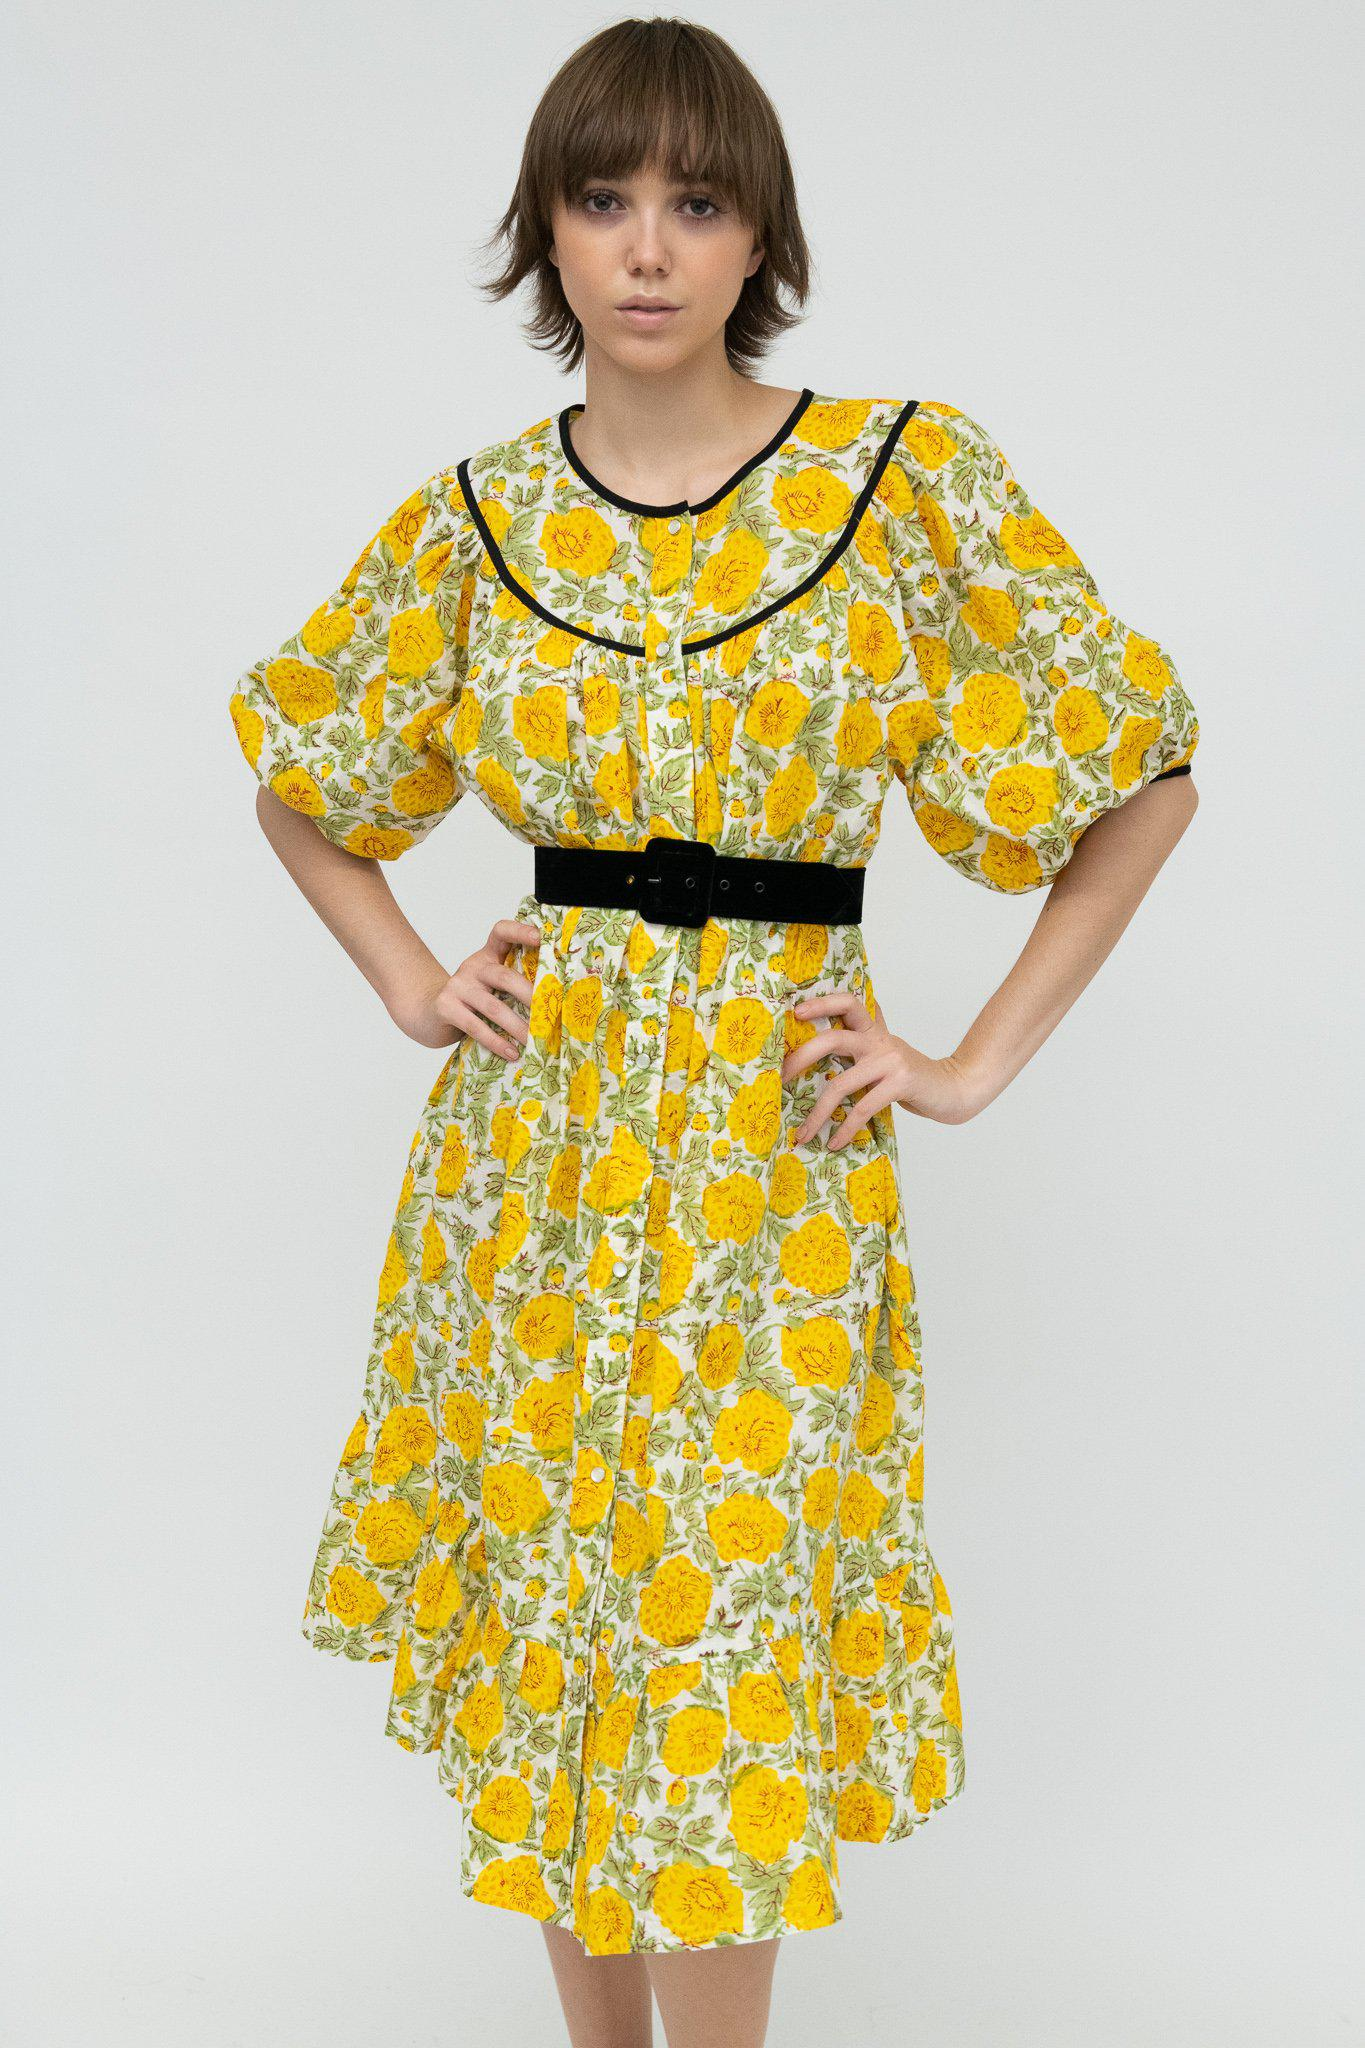 Snap Housedress in Yellow Floral